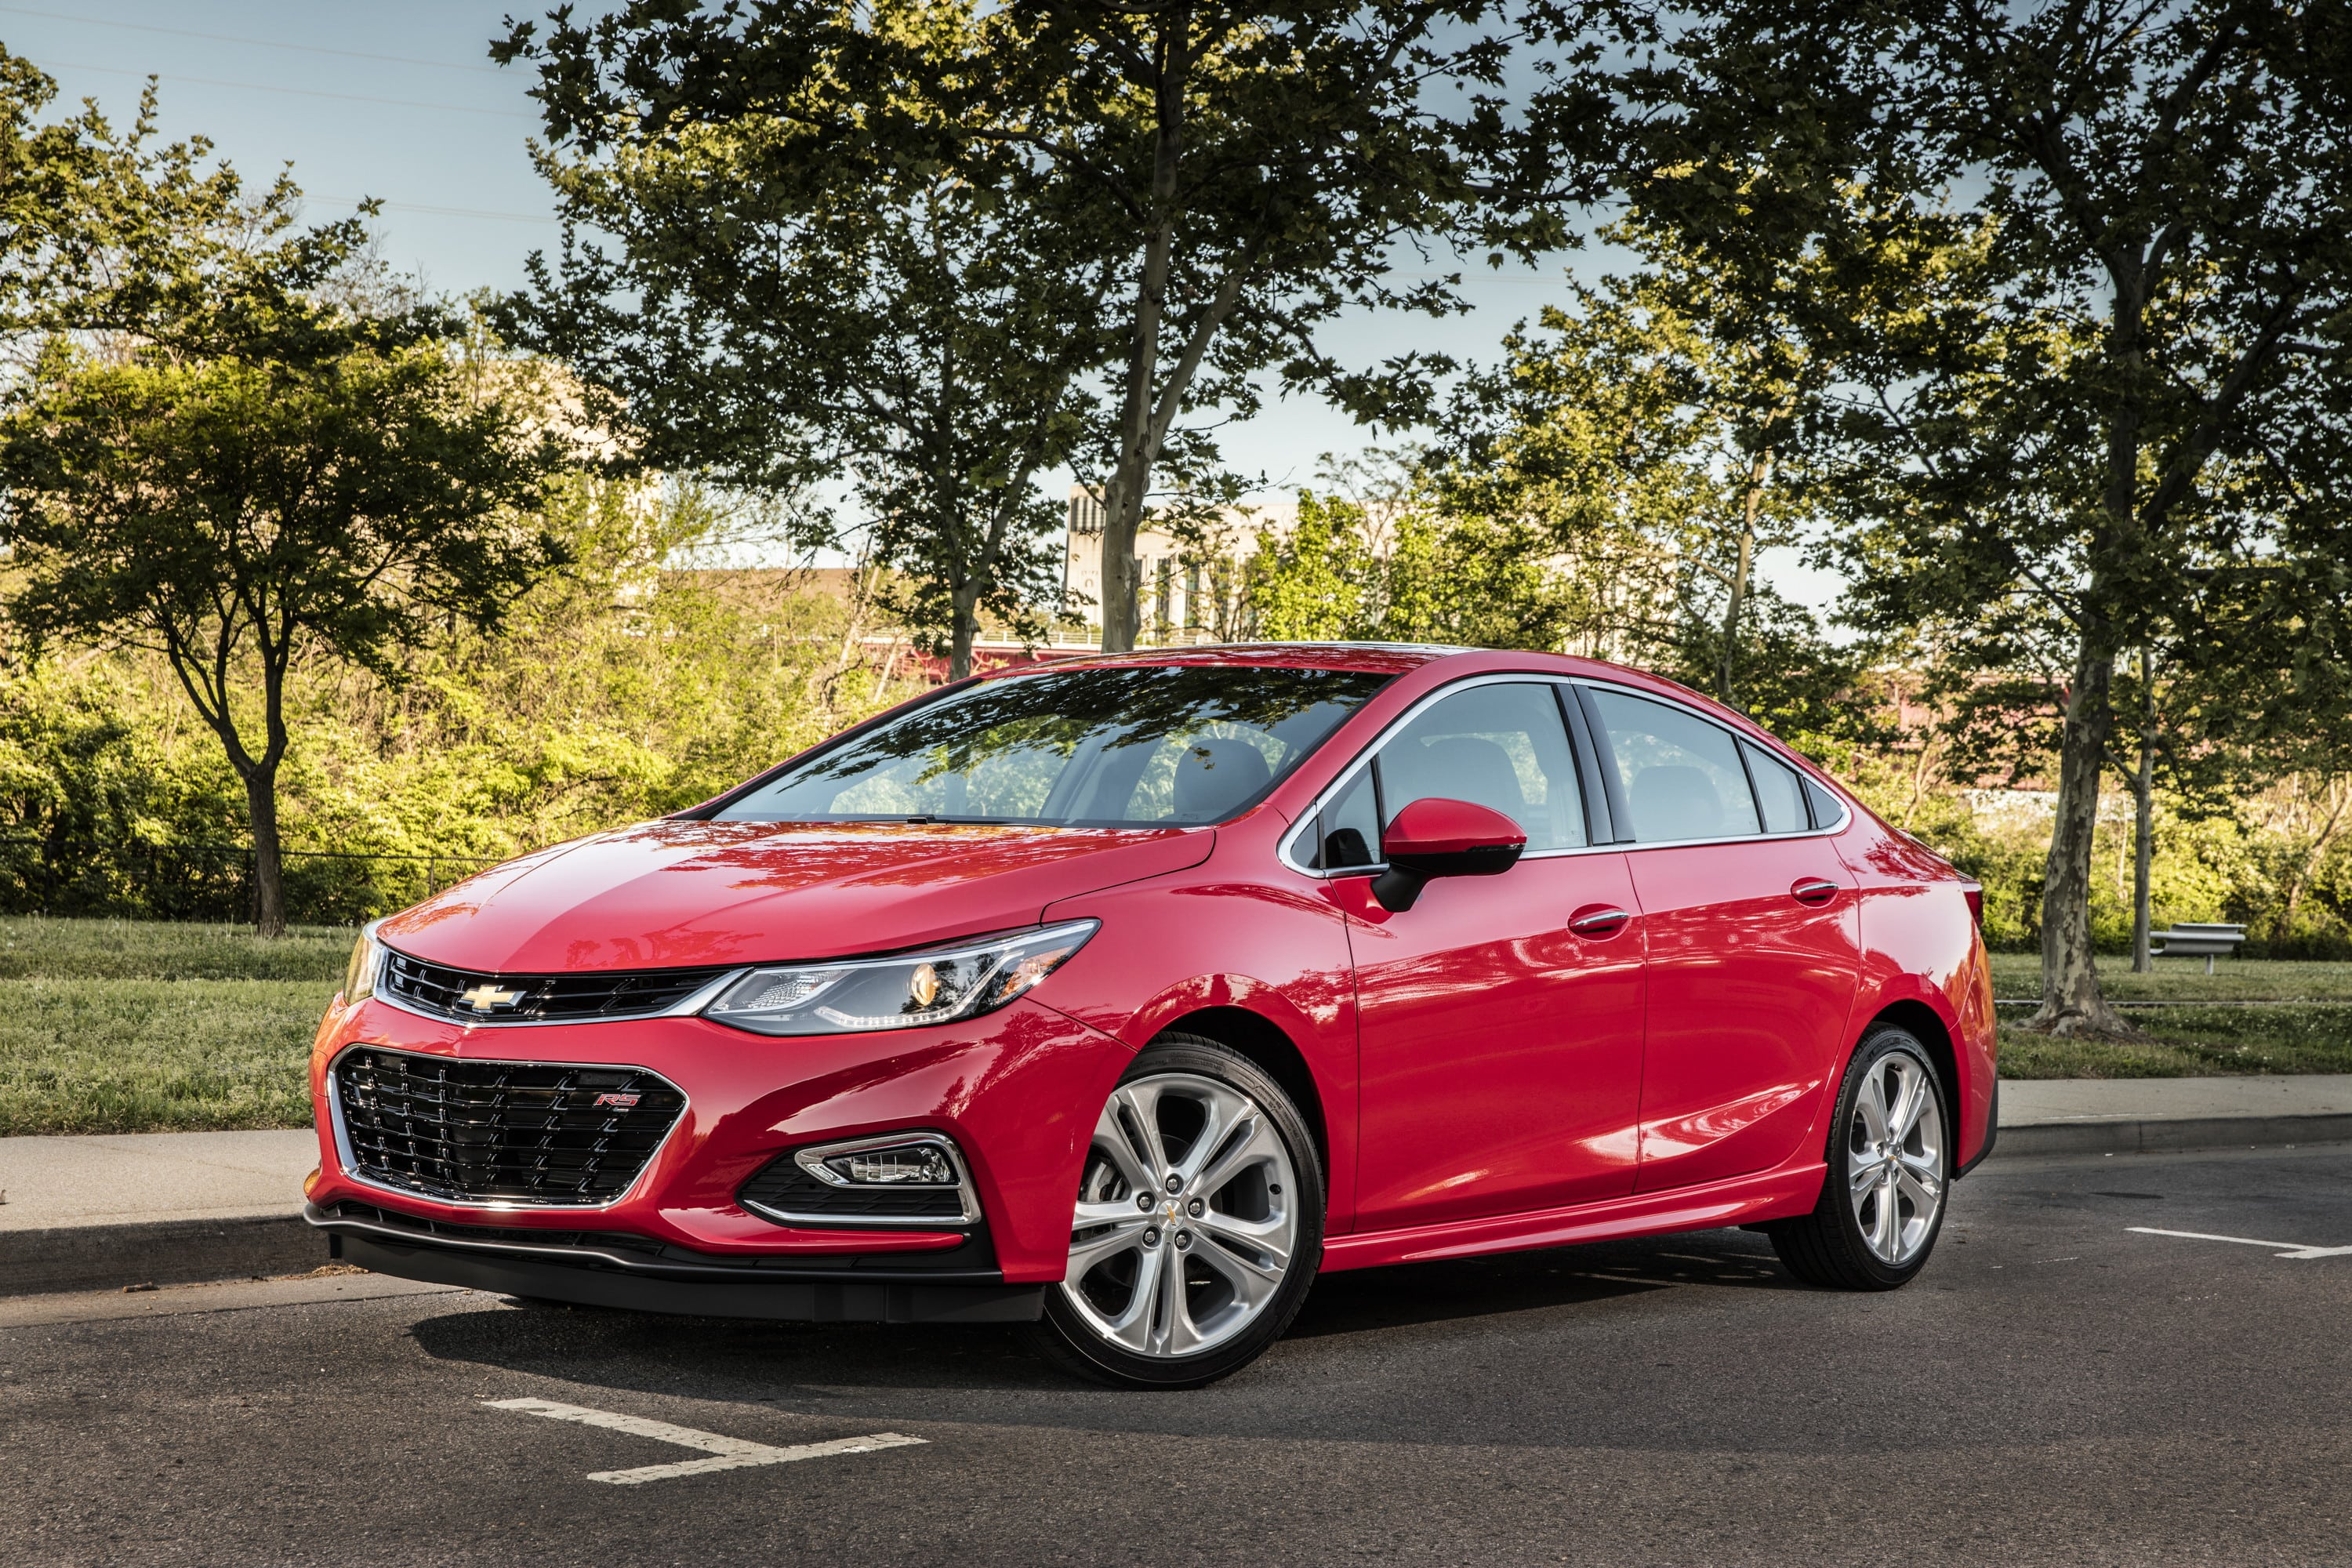 Chevrolet Cruze 2 Desktop wallpaper